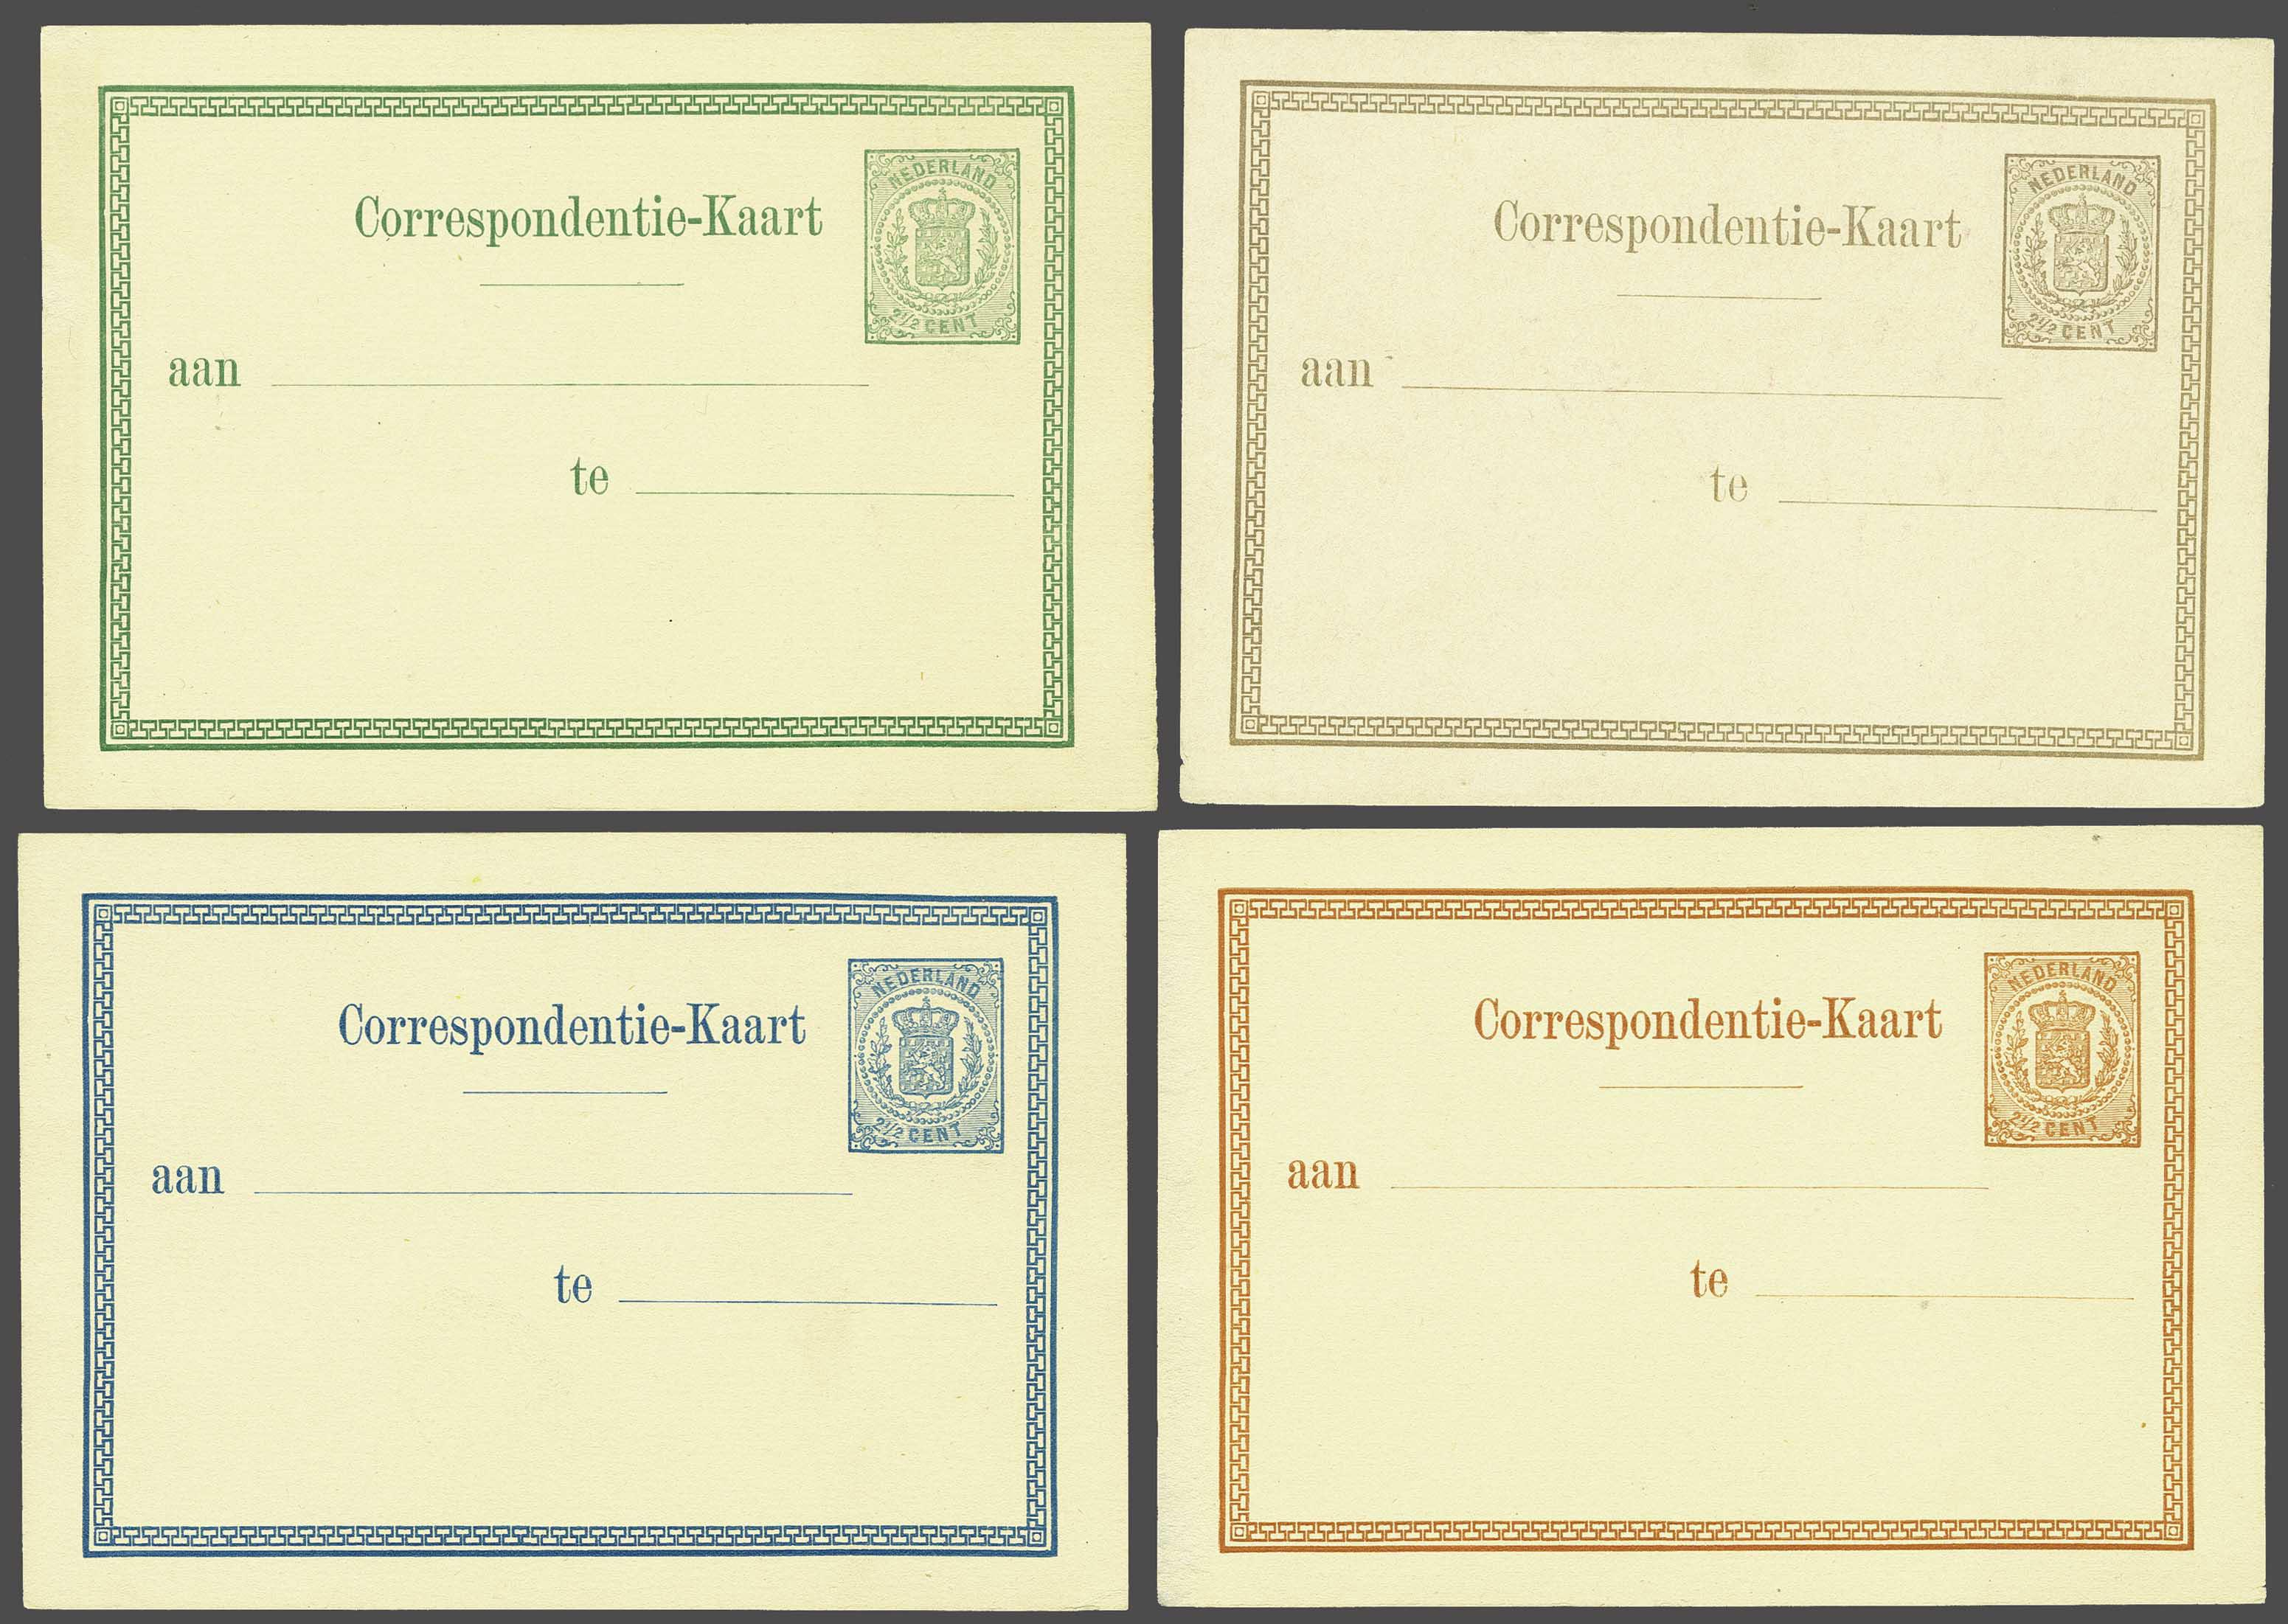 Lot 1827 - Netherlands and former colonies Netherlands Postal Stationery -  Corinphila Veilingen Auction 245-246 Day 3 - Netherlands and former colonies - Single lots, Collections and lots, Boxes and literature